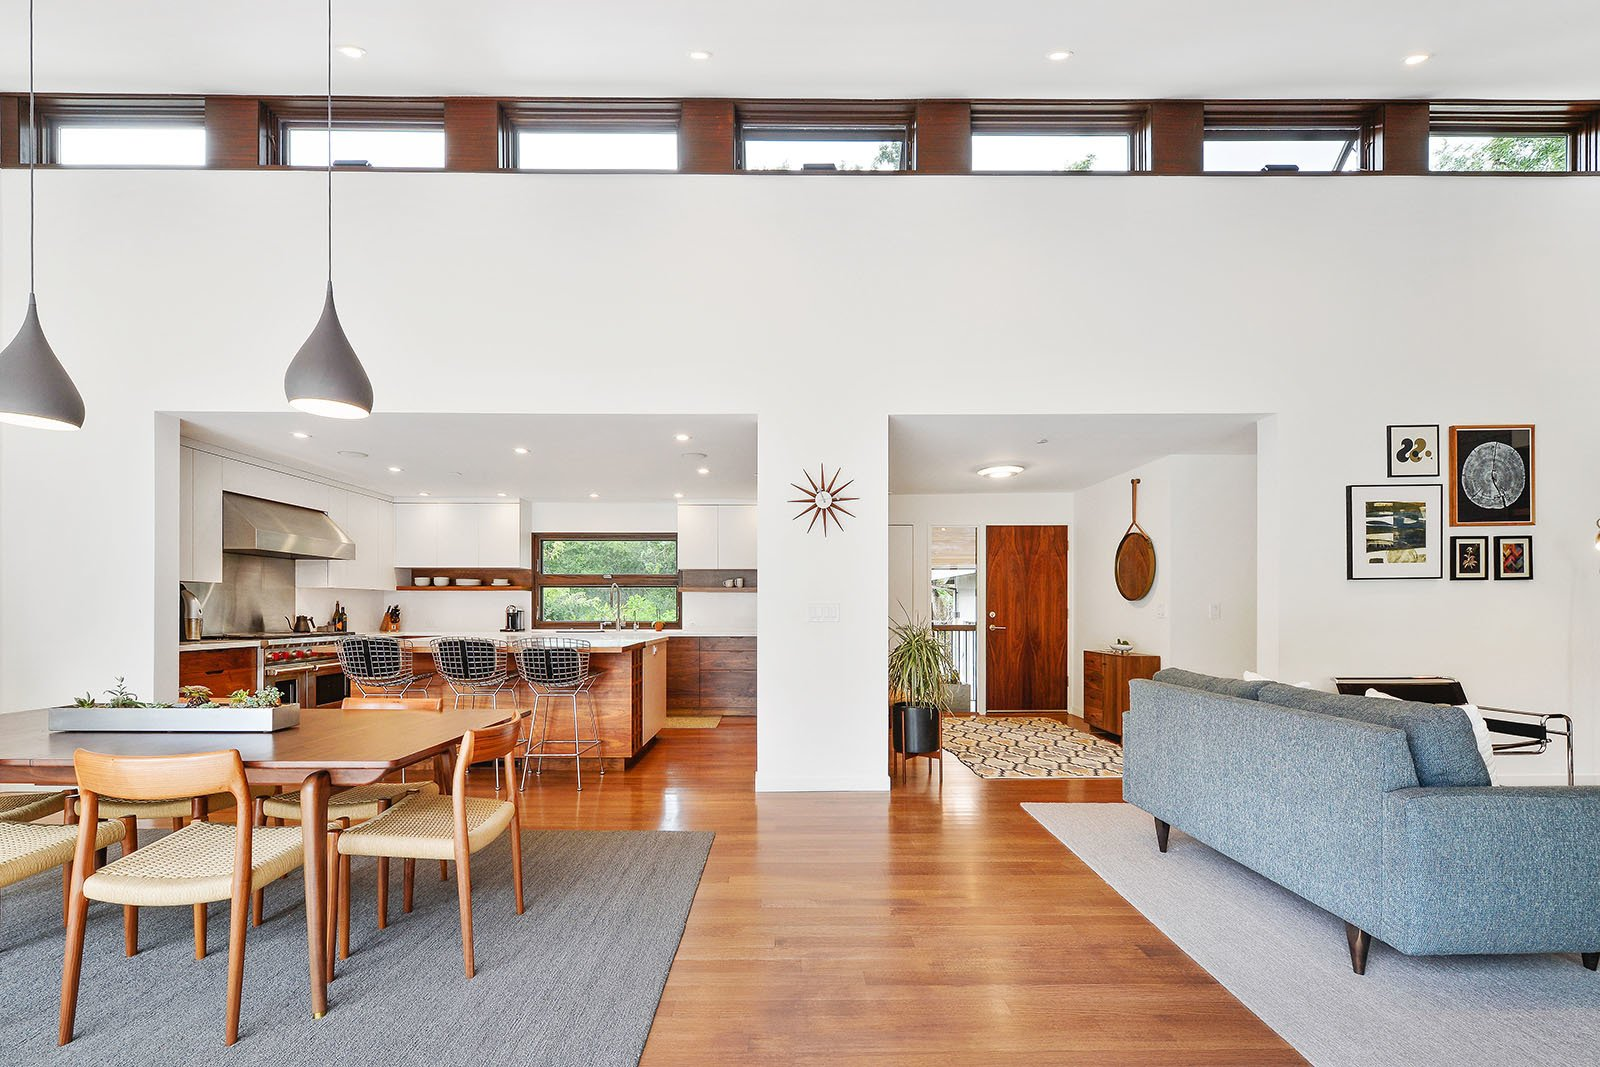 Dining Room, Chair, Stools, Table, Lamps, Ceiling Lighting, Pendant Lighting, and Medium Hardwood Floor Living room  Portola Valley by patrick perez/designpad architecture